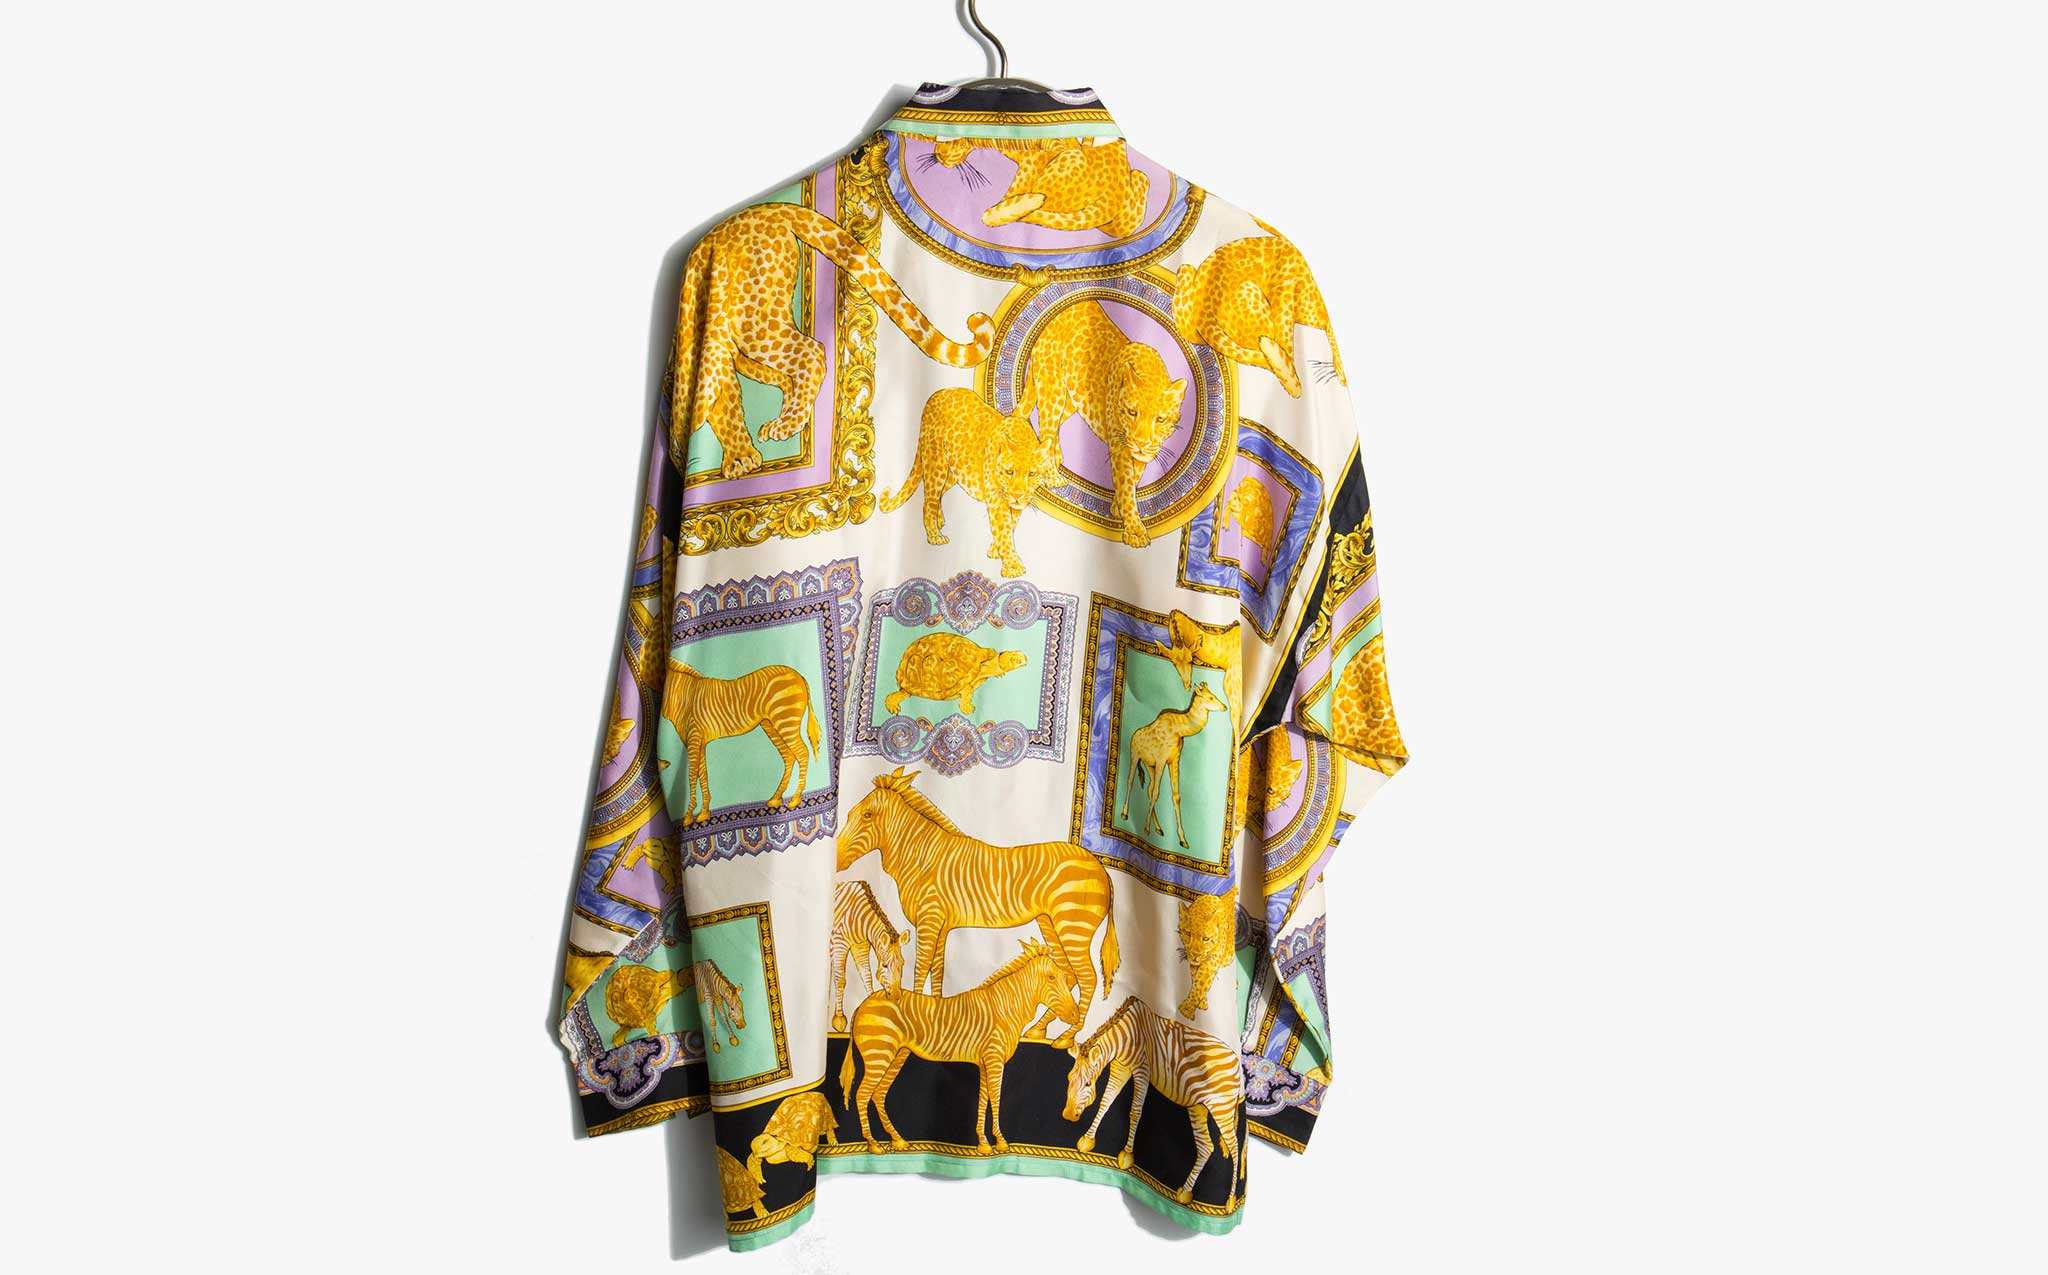 Gianni Versace Iconic 1990's Silk Animal Print Shirt